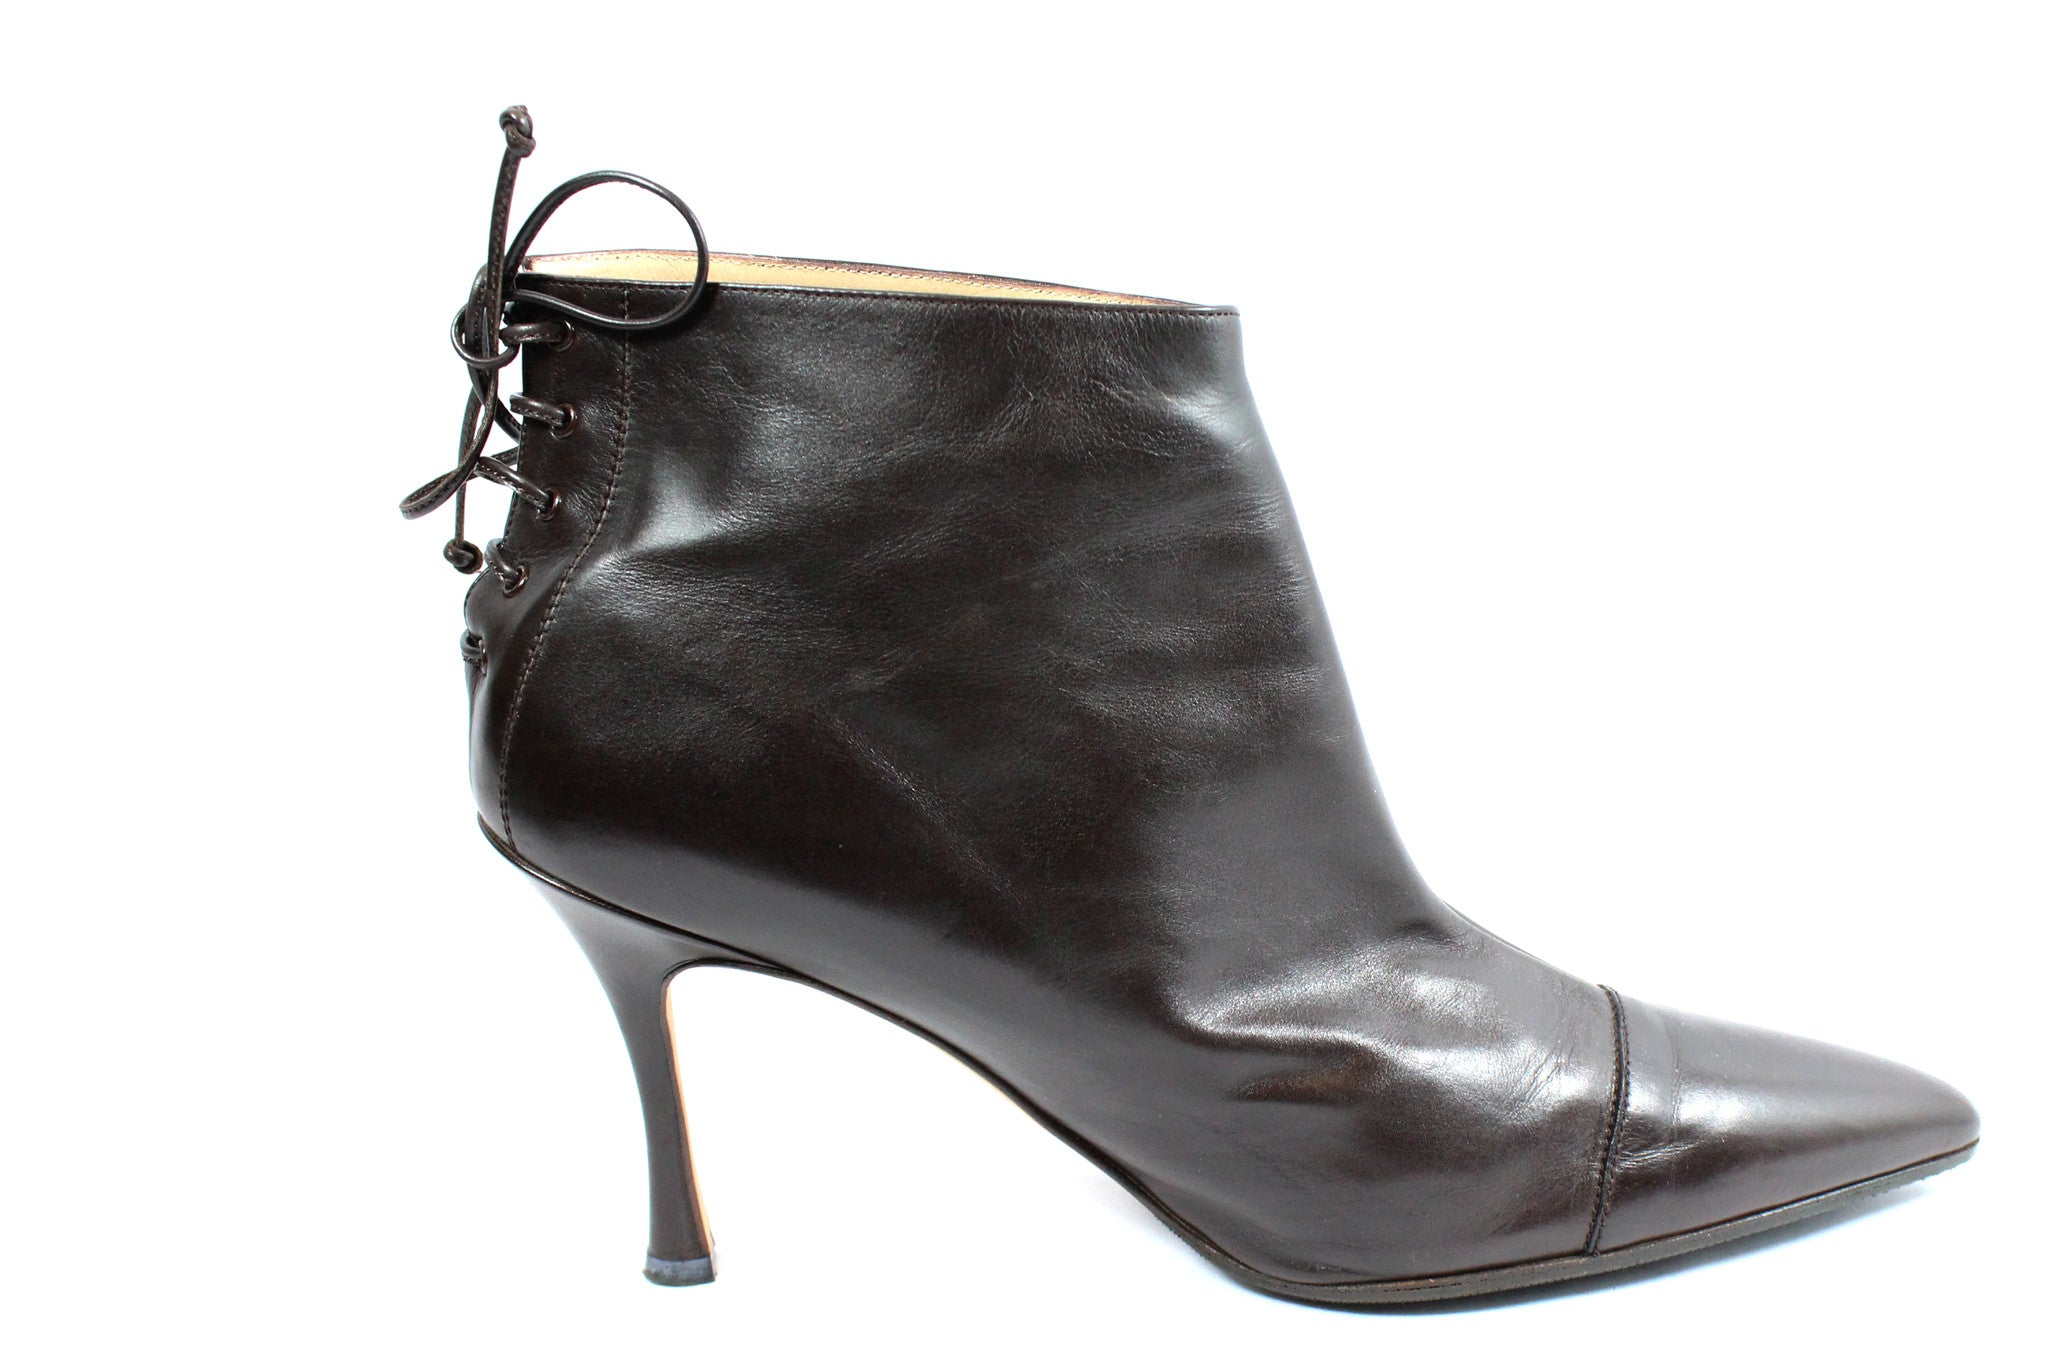 Manolo Blahnik Brown Leather Booties with Lace-Up Back (Size 41) - Encore Consignment - 4